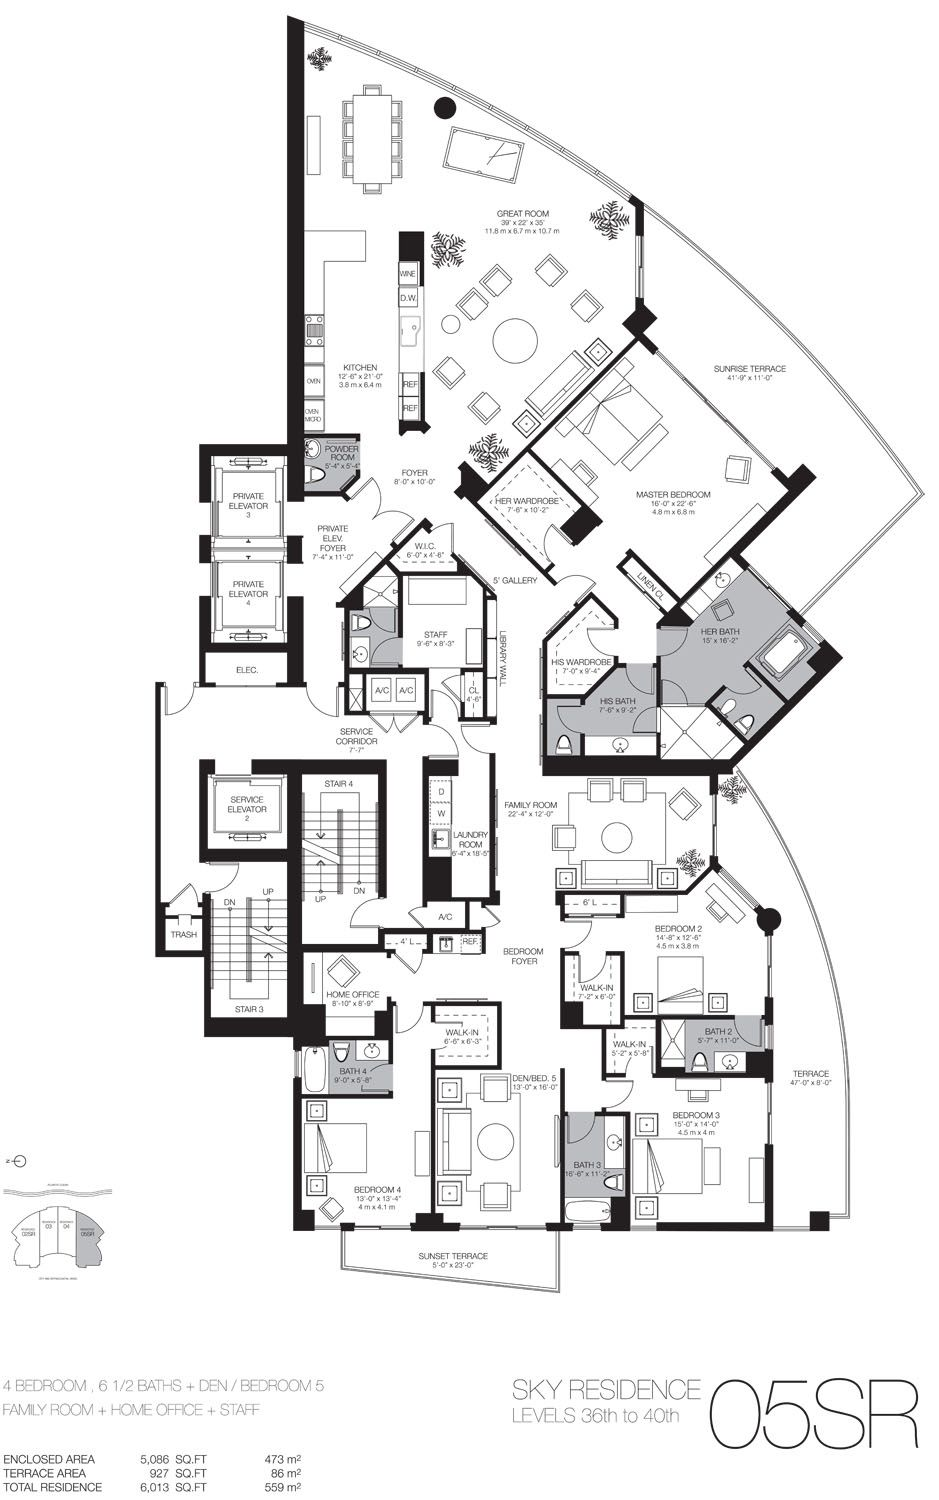 luxury beach home floor plans miami luxury real estate miami beach luxury homes condos - Luxury Floor Plans